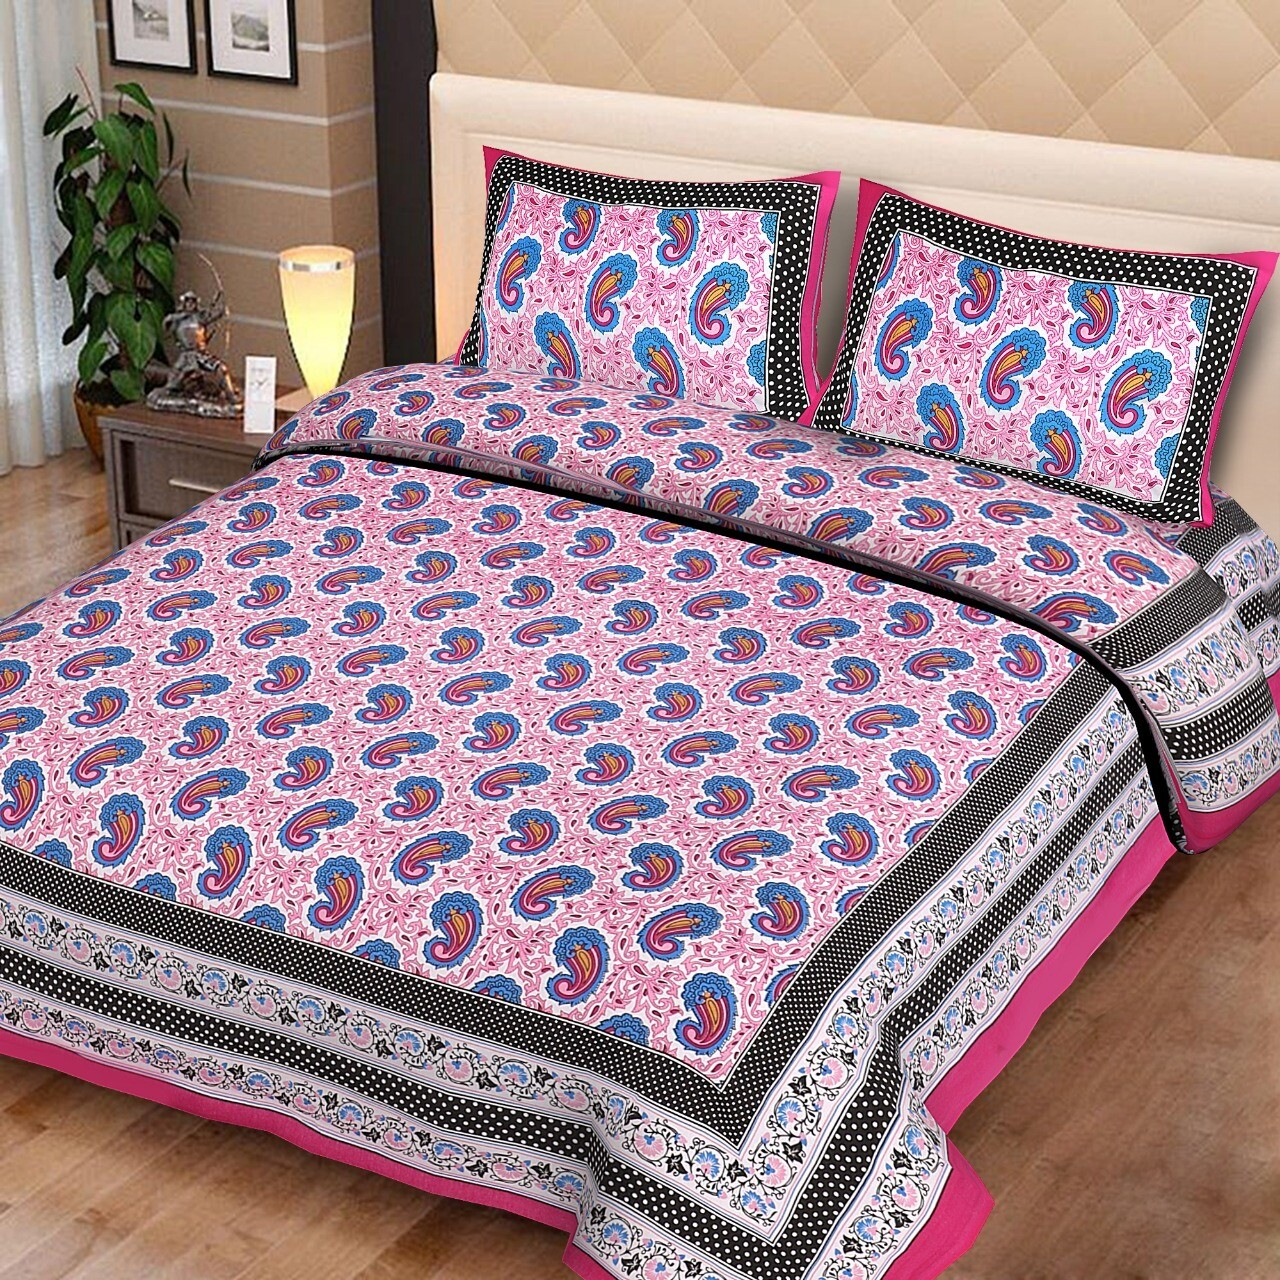 2025  Double Bedsheets With Two Pillow Cover